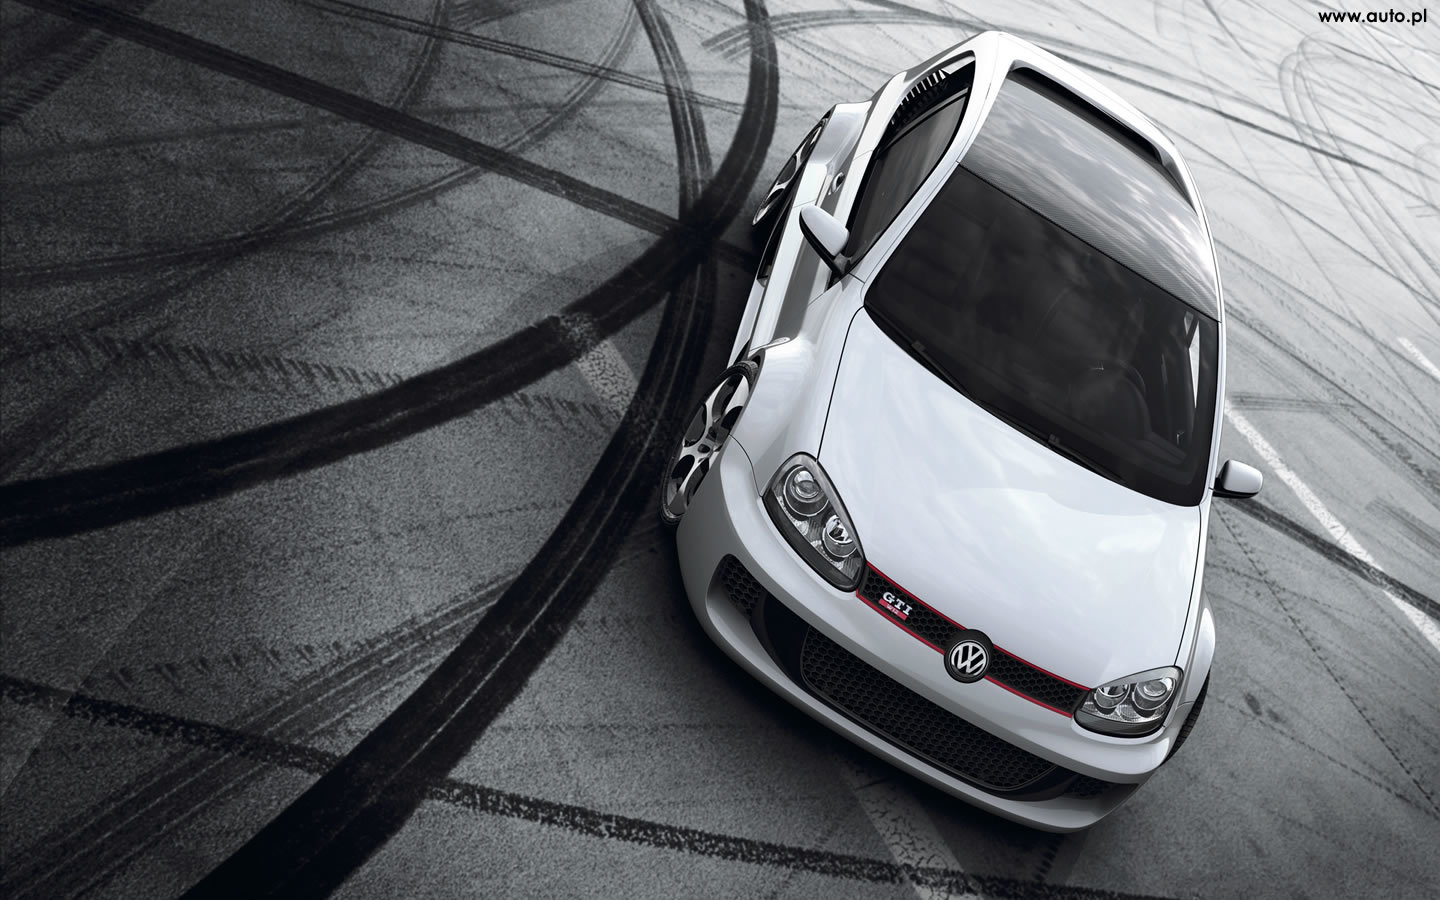 cars Volkswagen white cars HD Wallpaper